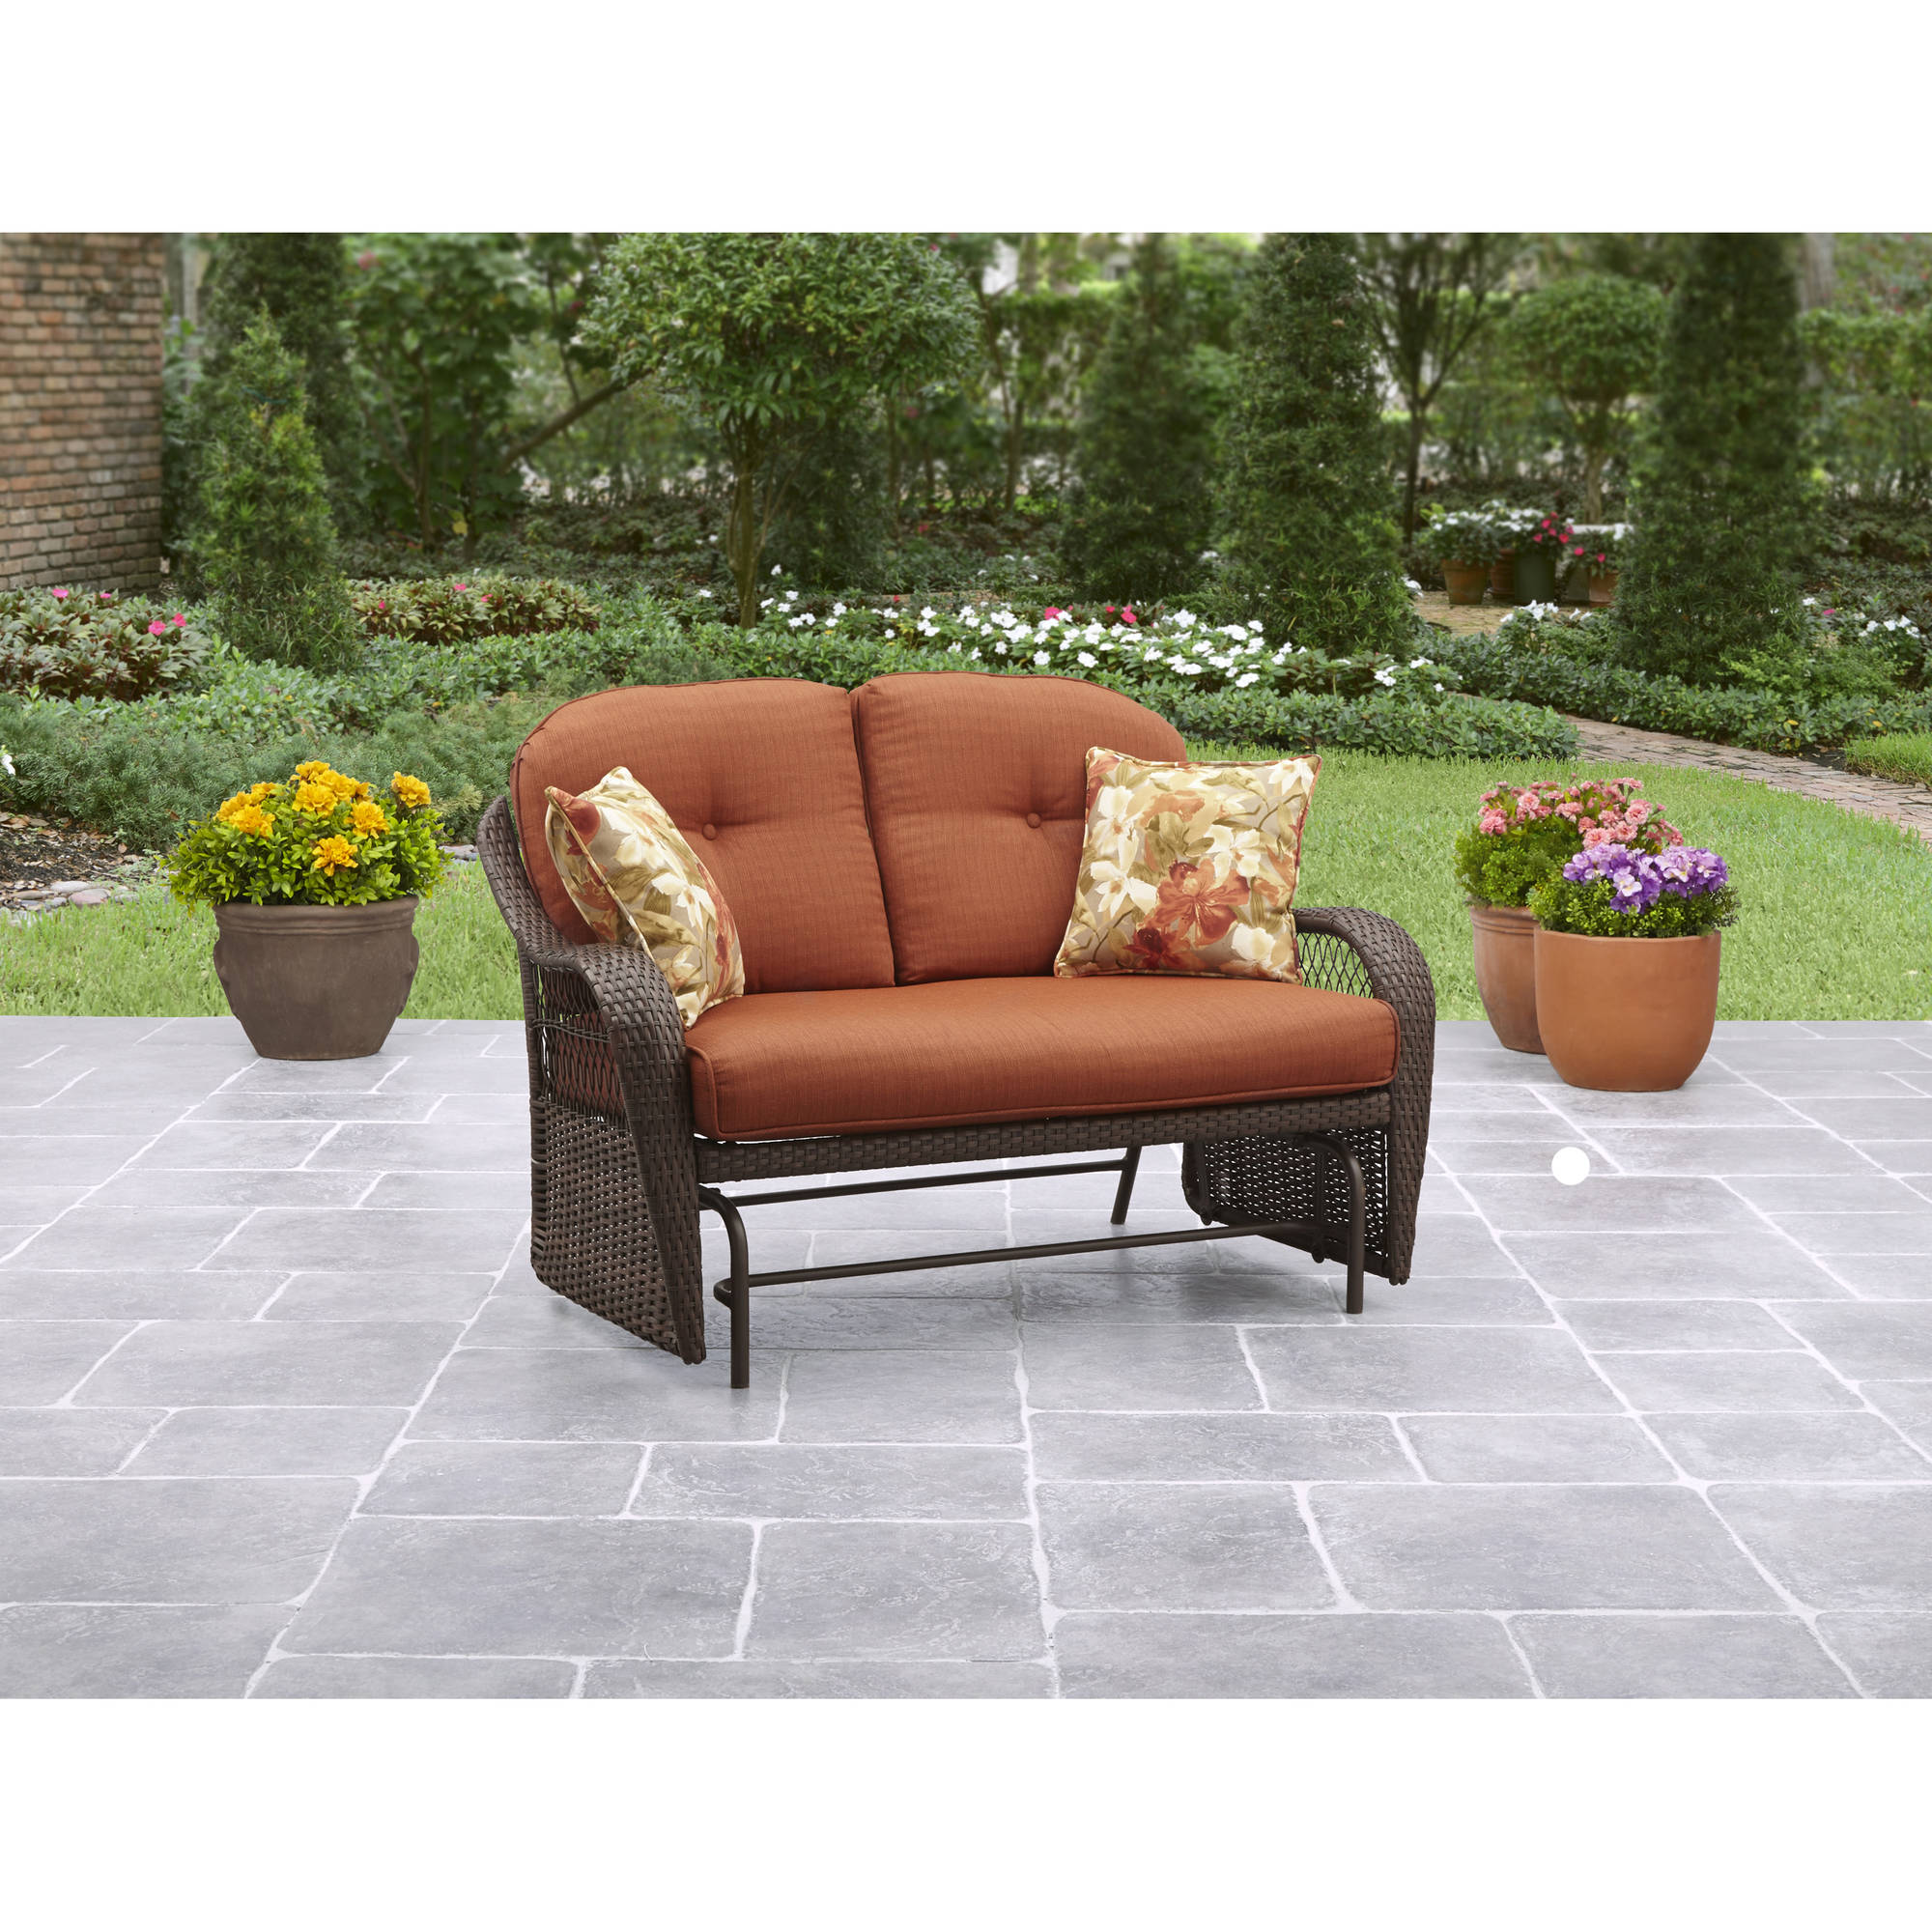 Better Homes Gardens Azalea Ridge 2 Person Outdoor Glider Vermillion